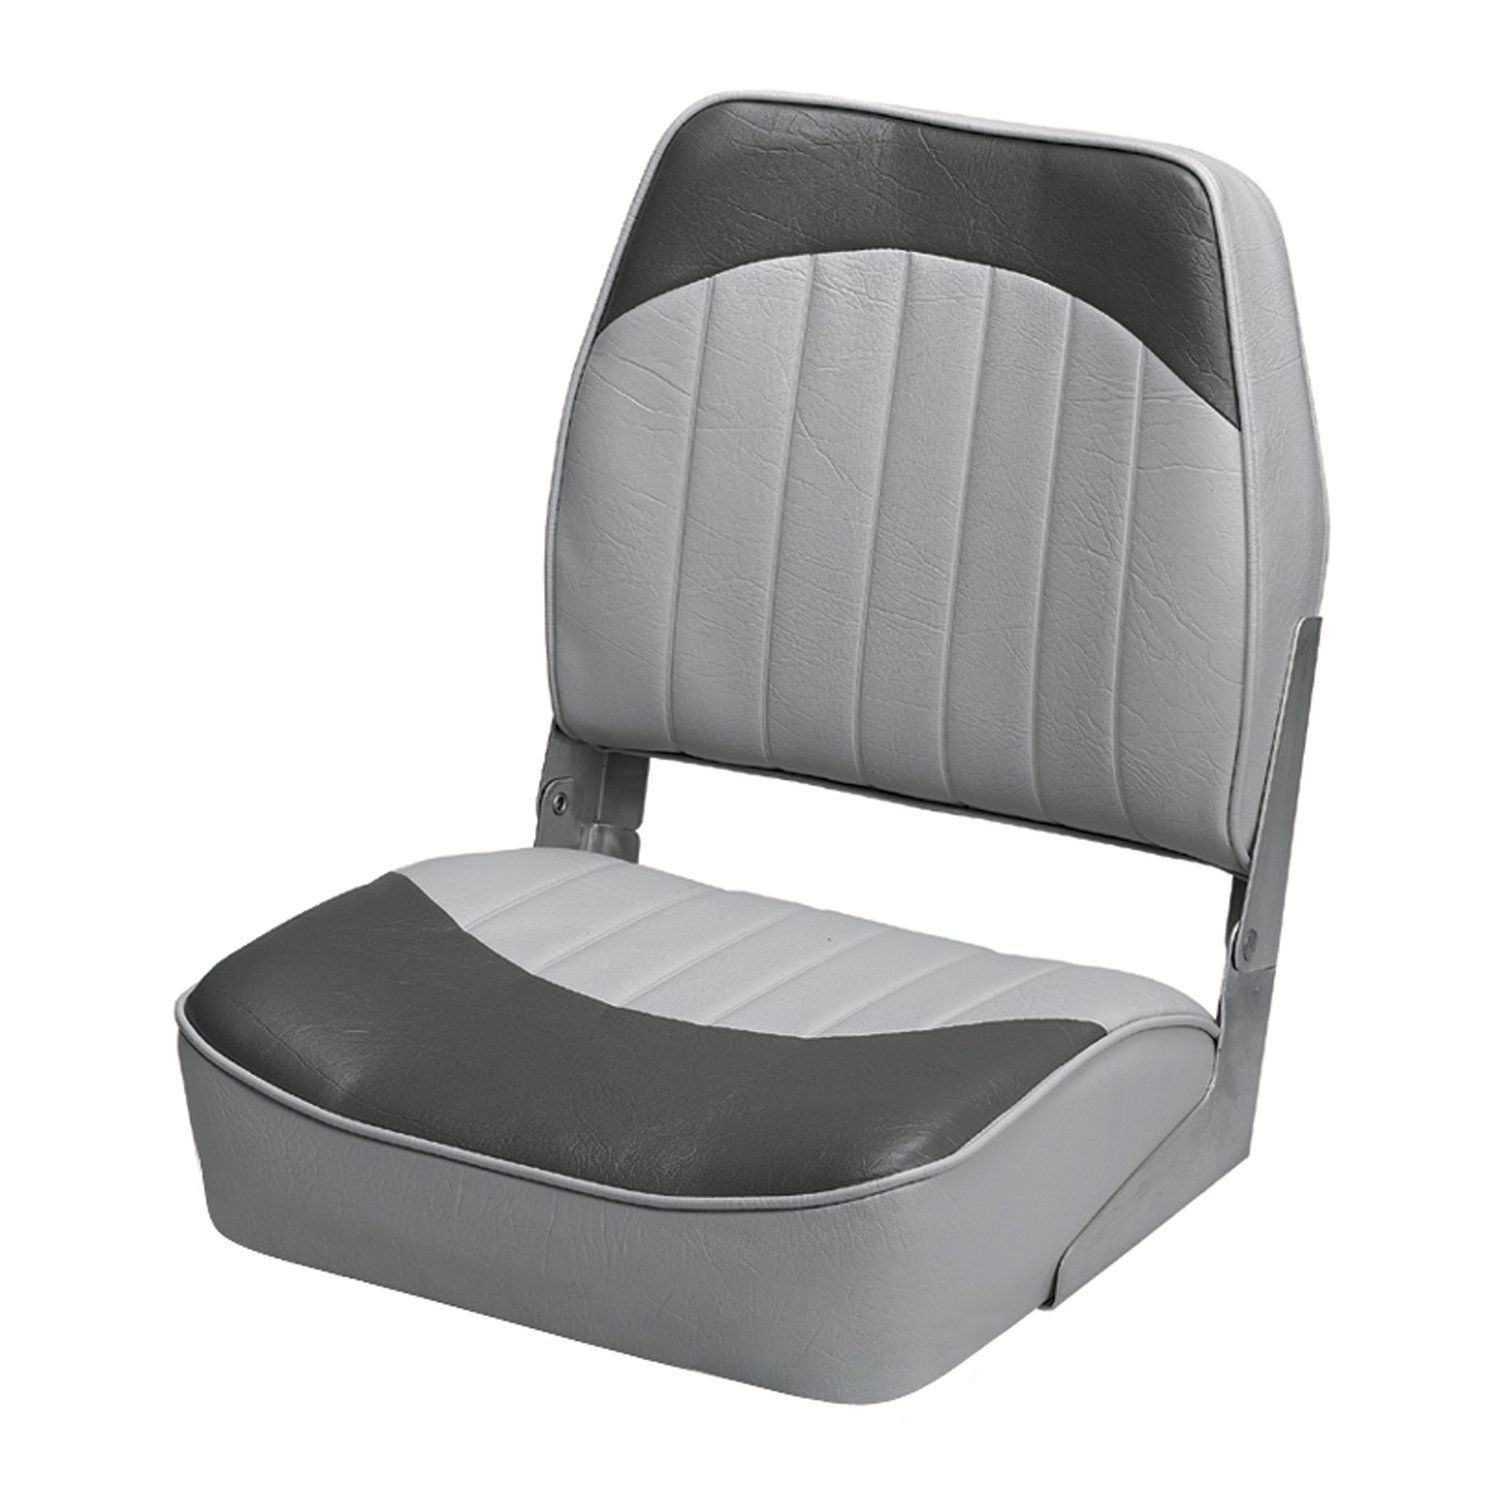 Wise 8WD734PLS-664 Low Back Boat Seat, Grey/Charcoal by Wise